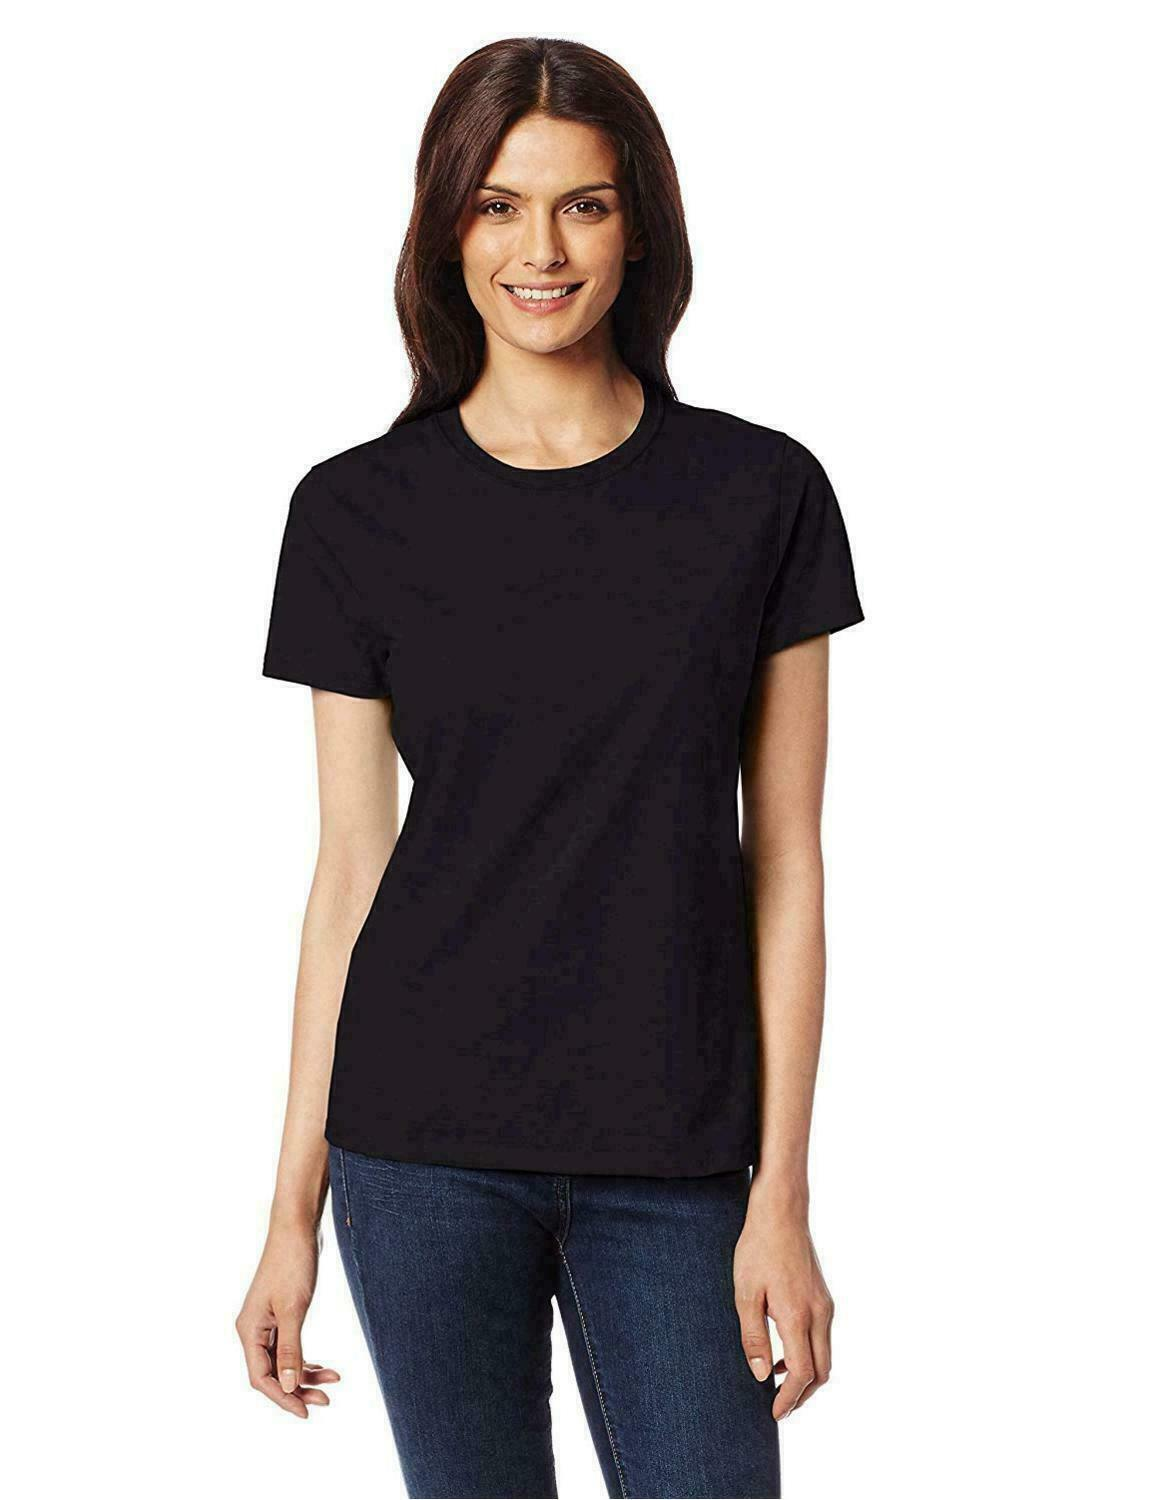 Hanes Women's Nano T-Shirt, Medium, Black, Black,Size Medium new with tags store